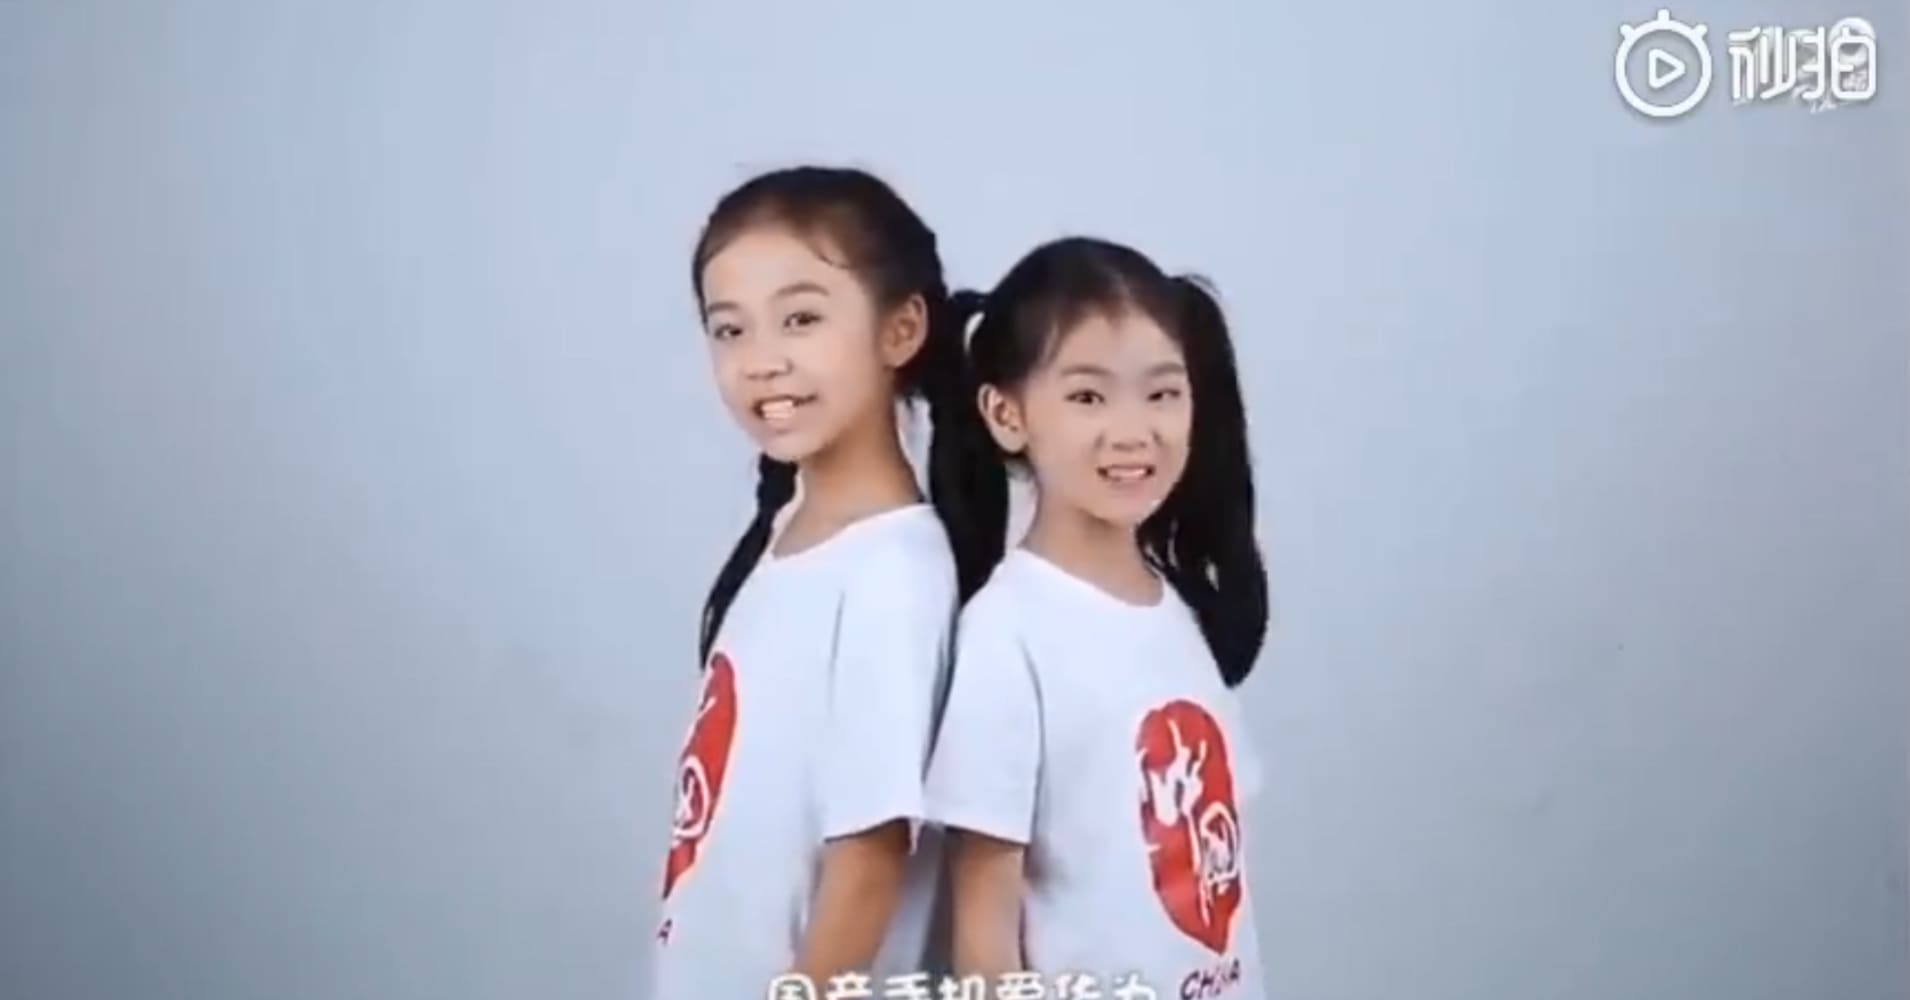 Video of kids singing 'Huawei is beautiful' goes viral in China